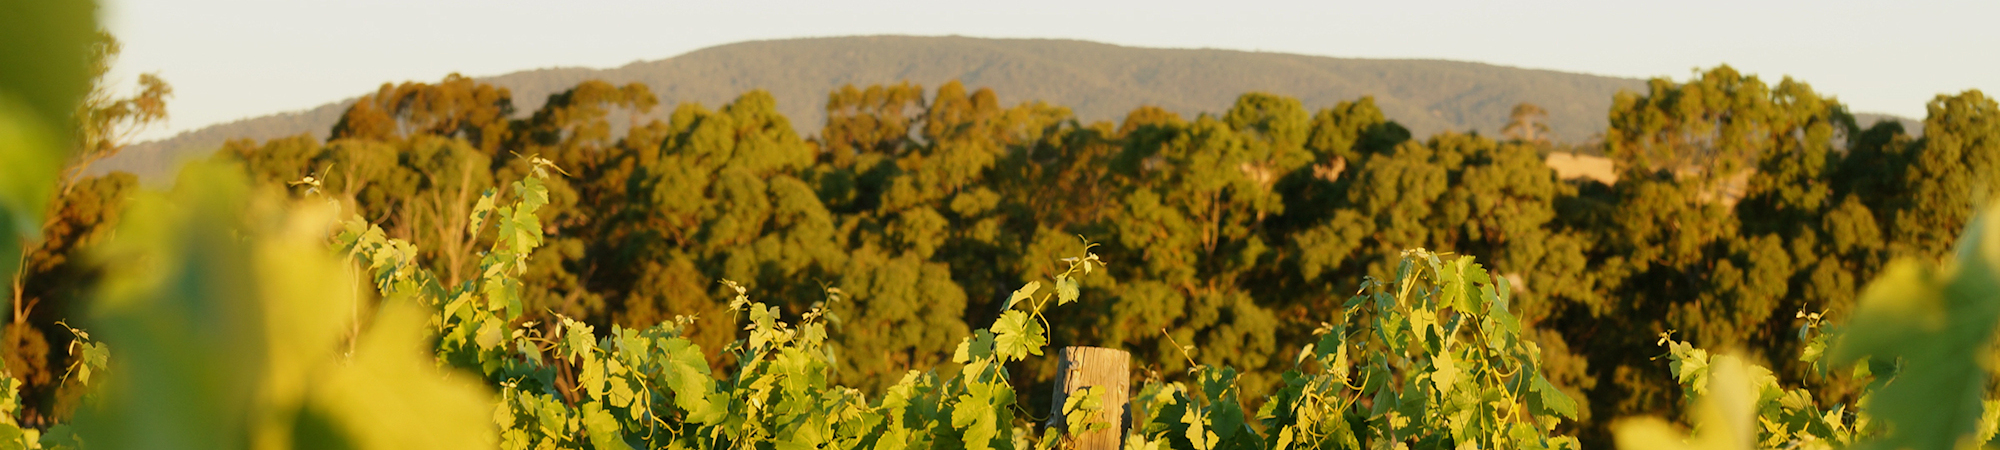 About Ned's Vineyard | Shiraz | Pyrenees | Yarra Valley wines